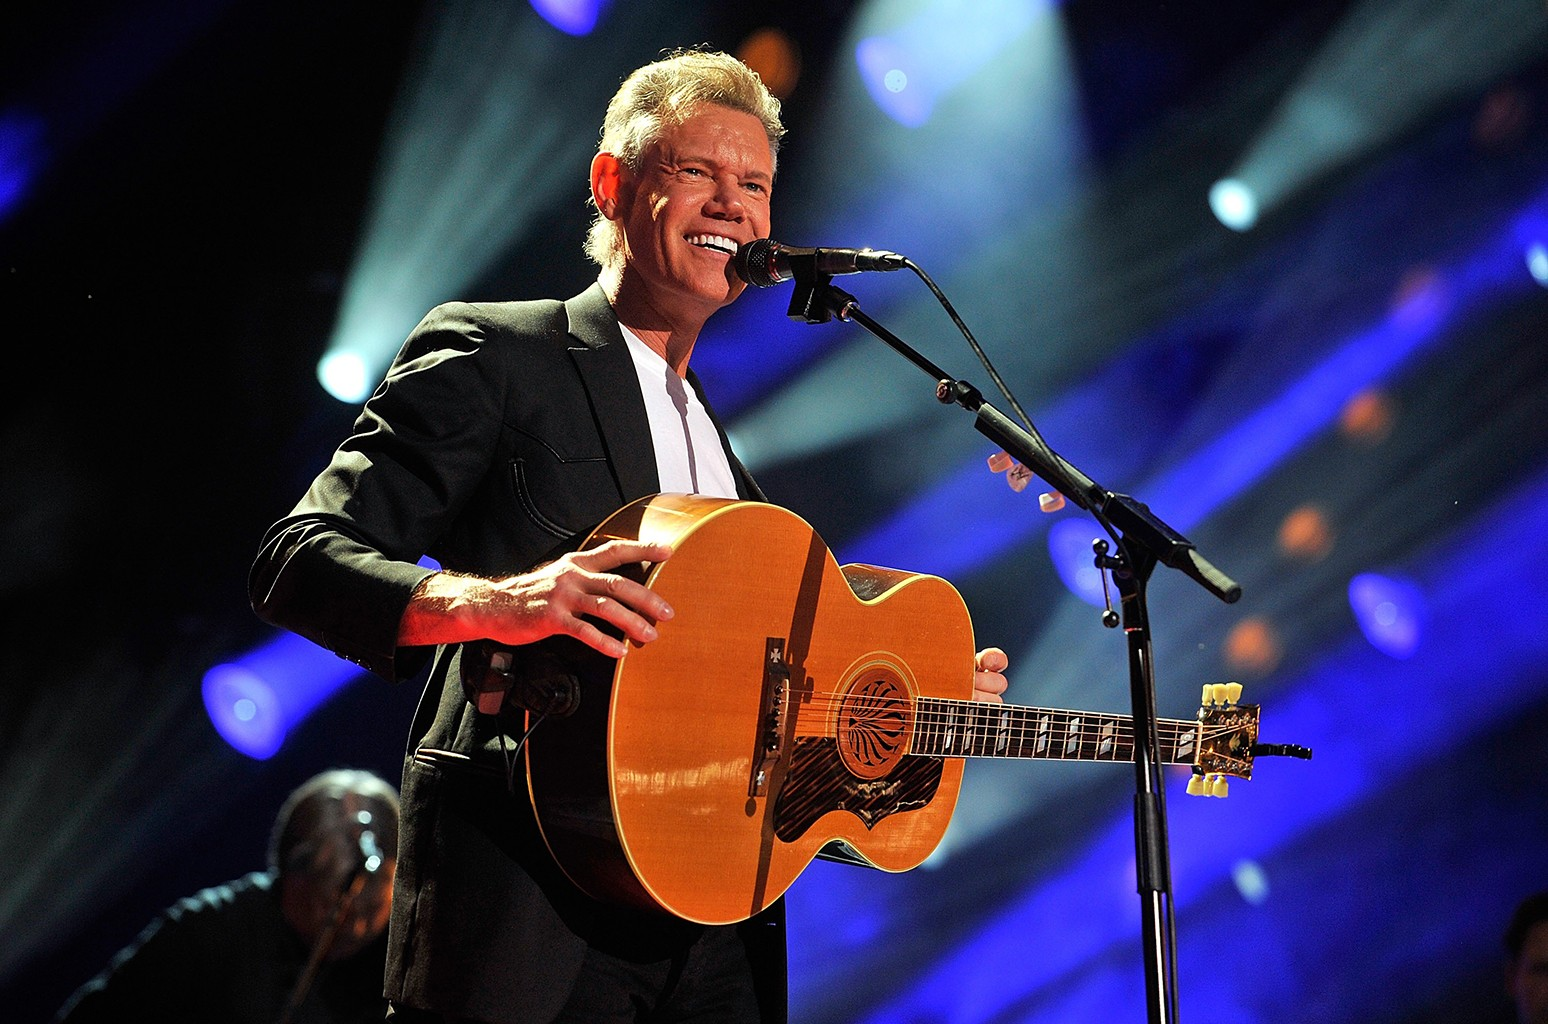 Randy Travis performs at LP Field during the 2013 CMA Music Festival on June 7, 2013 in Nashville.